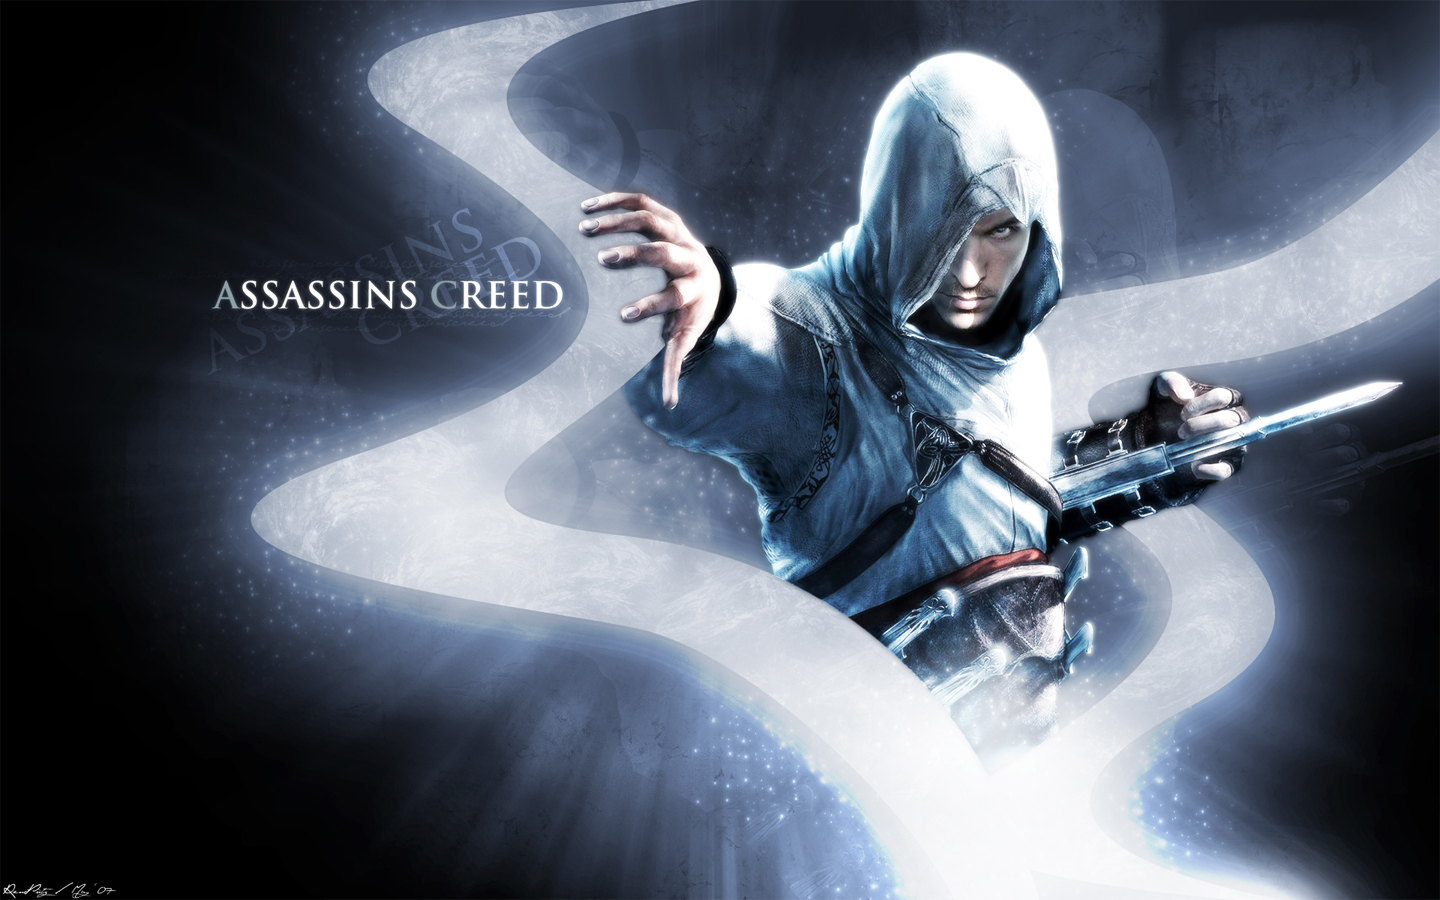 Assassins Creed Wallpapers Wallpaperholic 1440x900